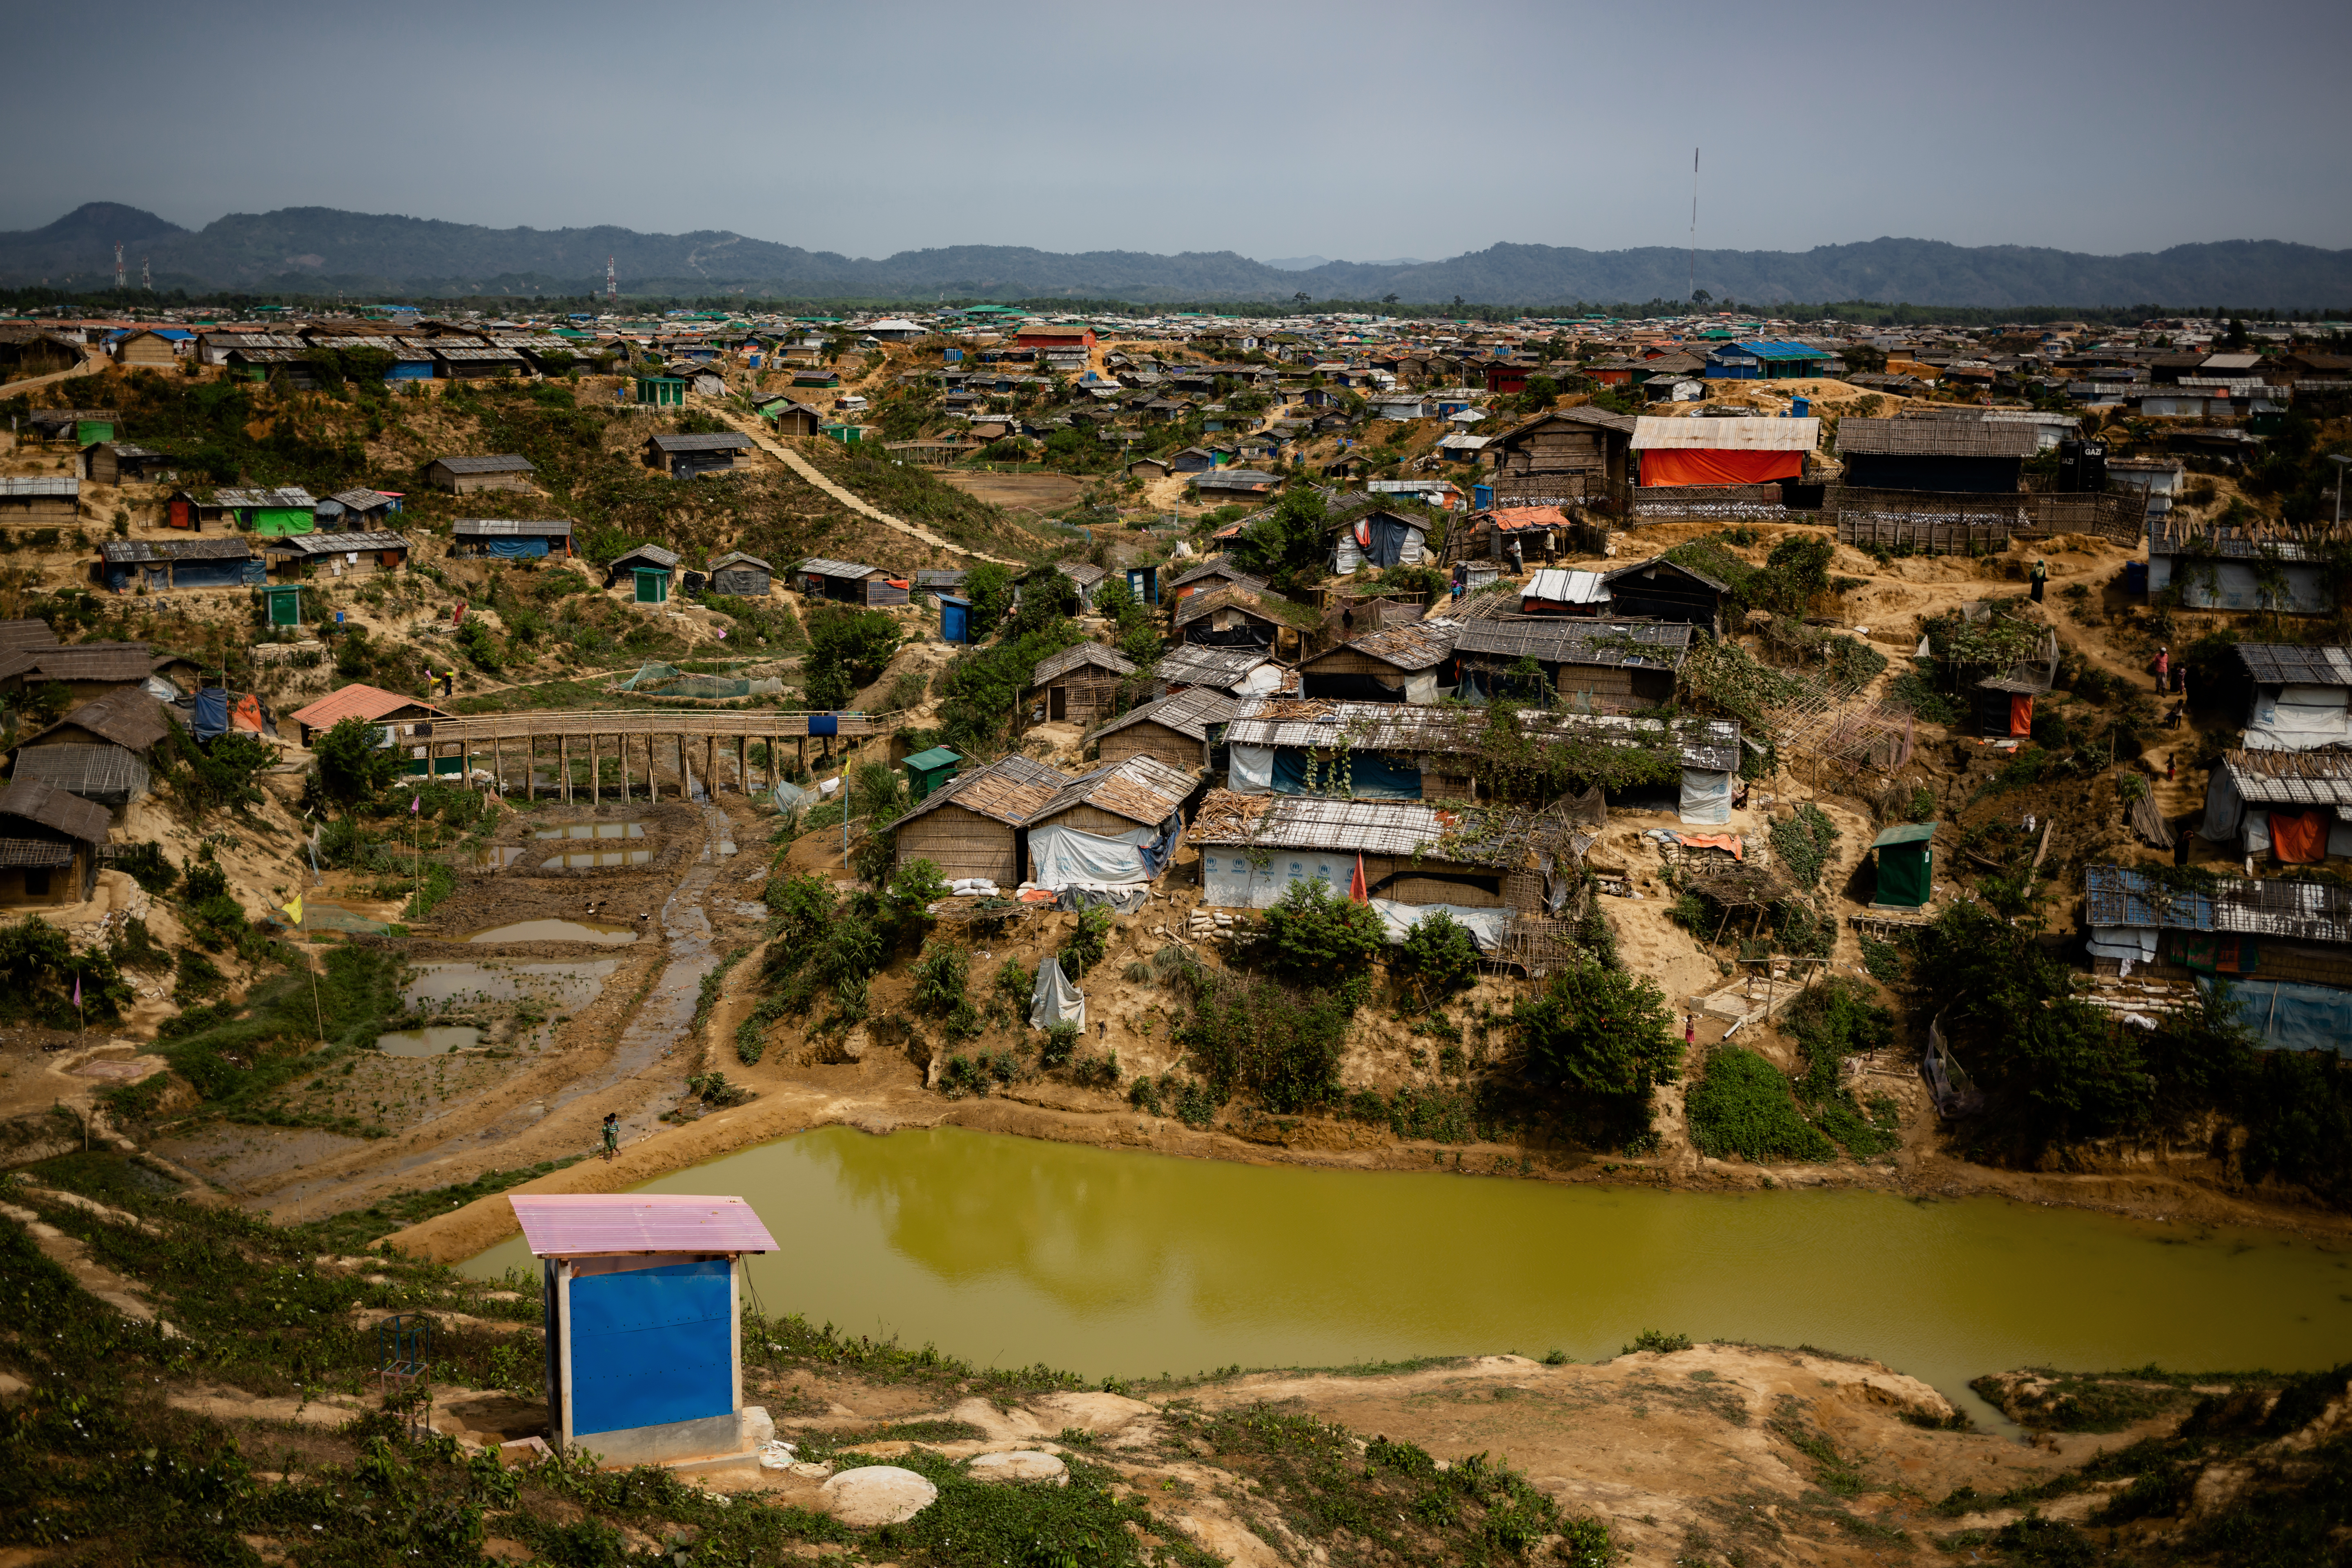 The Kutapalong Rohingya refugee camp is composed of hundreds of houses built on a muddy, piece of land with a river flowing in front of it. A shed stands on the opposite side of the river. This is home to more than one million displaced people.